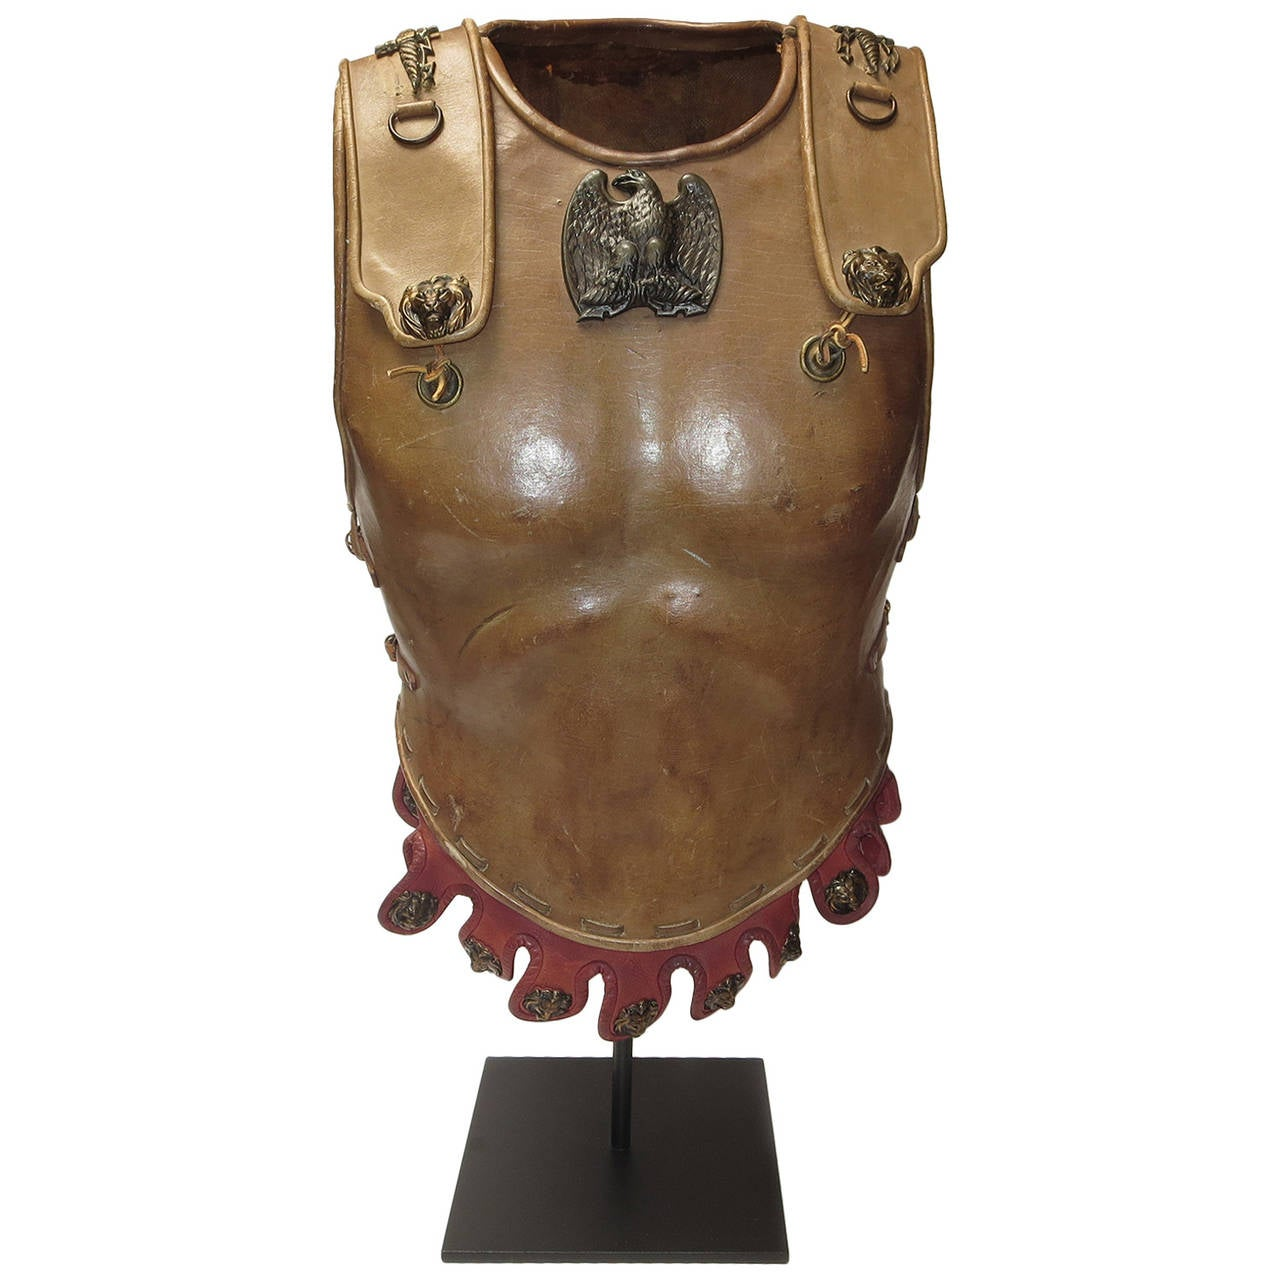 """Telly Savalas Leather Chest Plate Prop from """"The Greatest Story Ever Told"""", 1965 For Sale"""